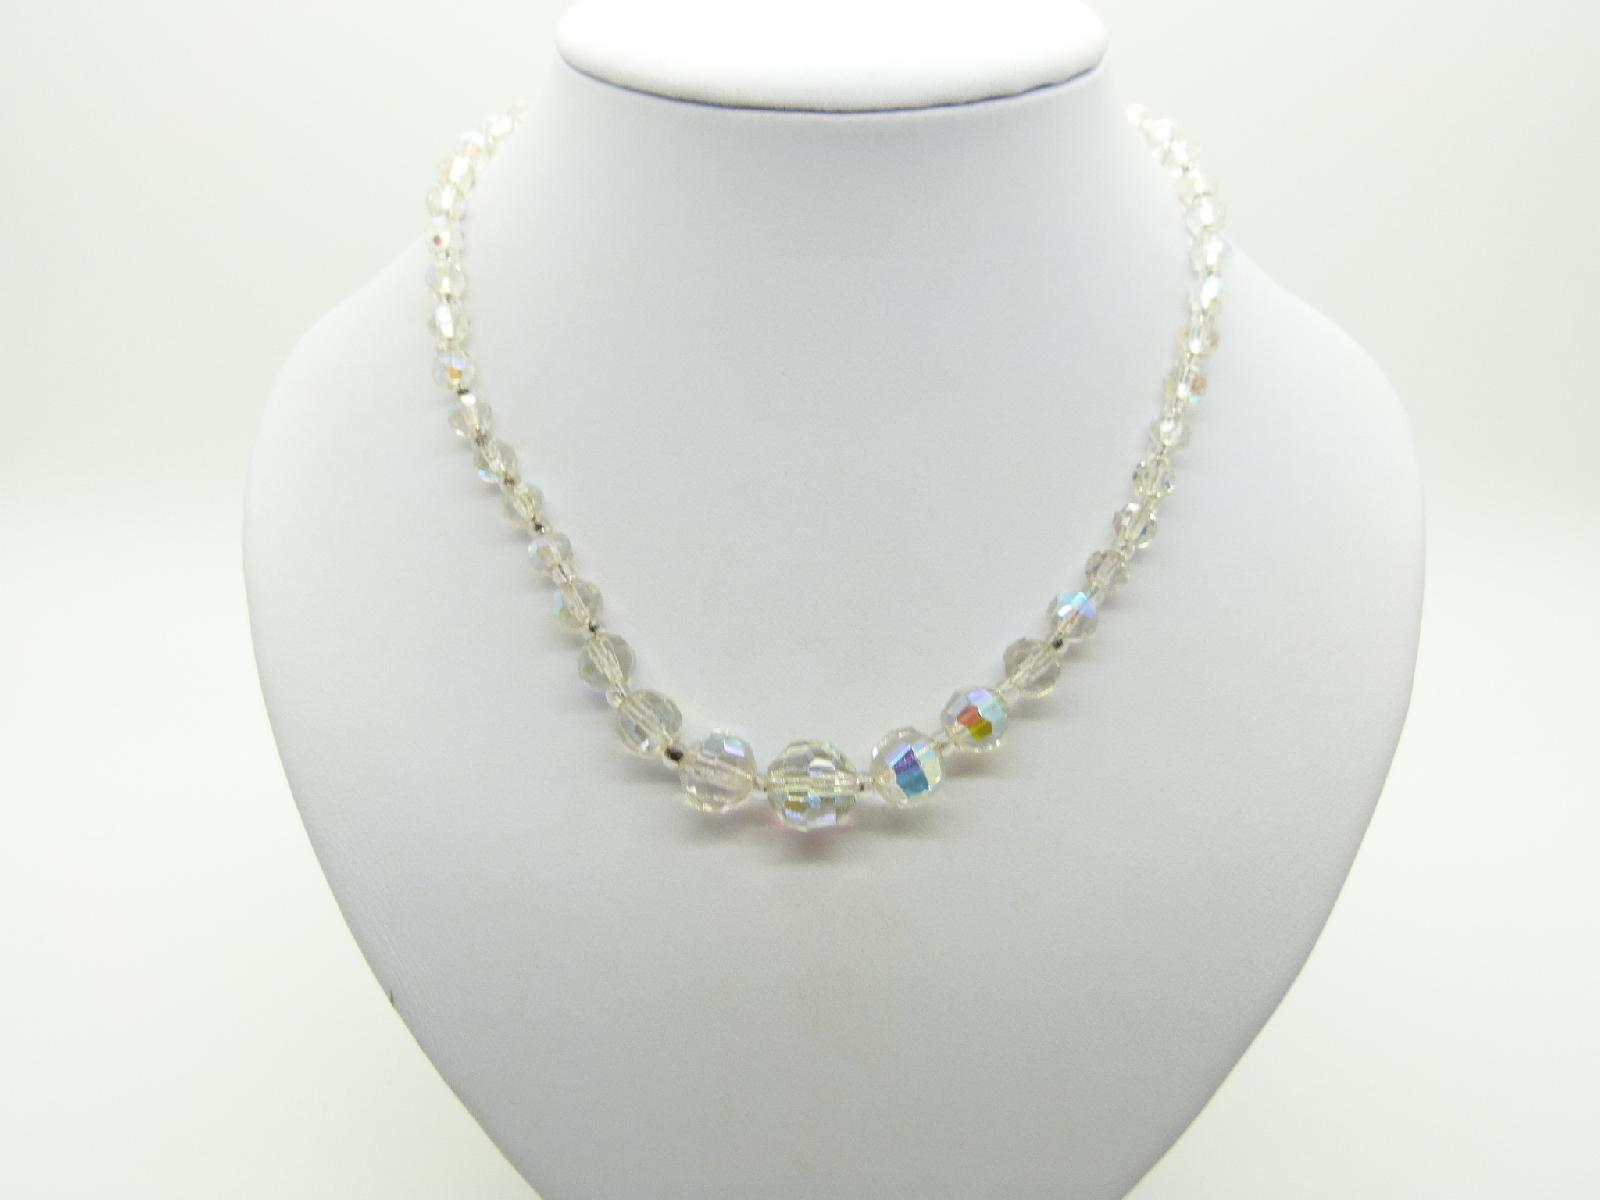 Vintage 50s Pretty AB Crystal Glass Bead Necklace 48cms Long